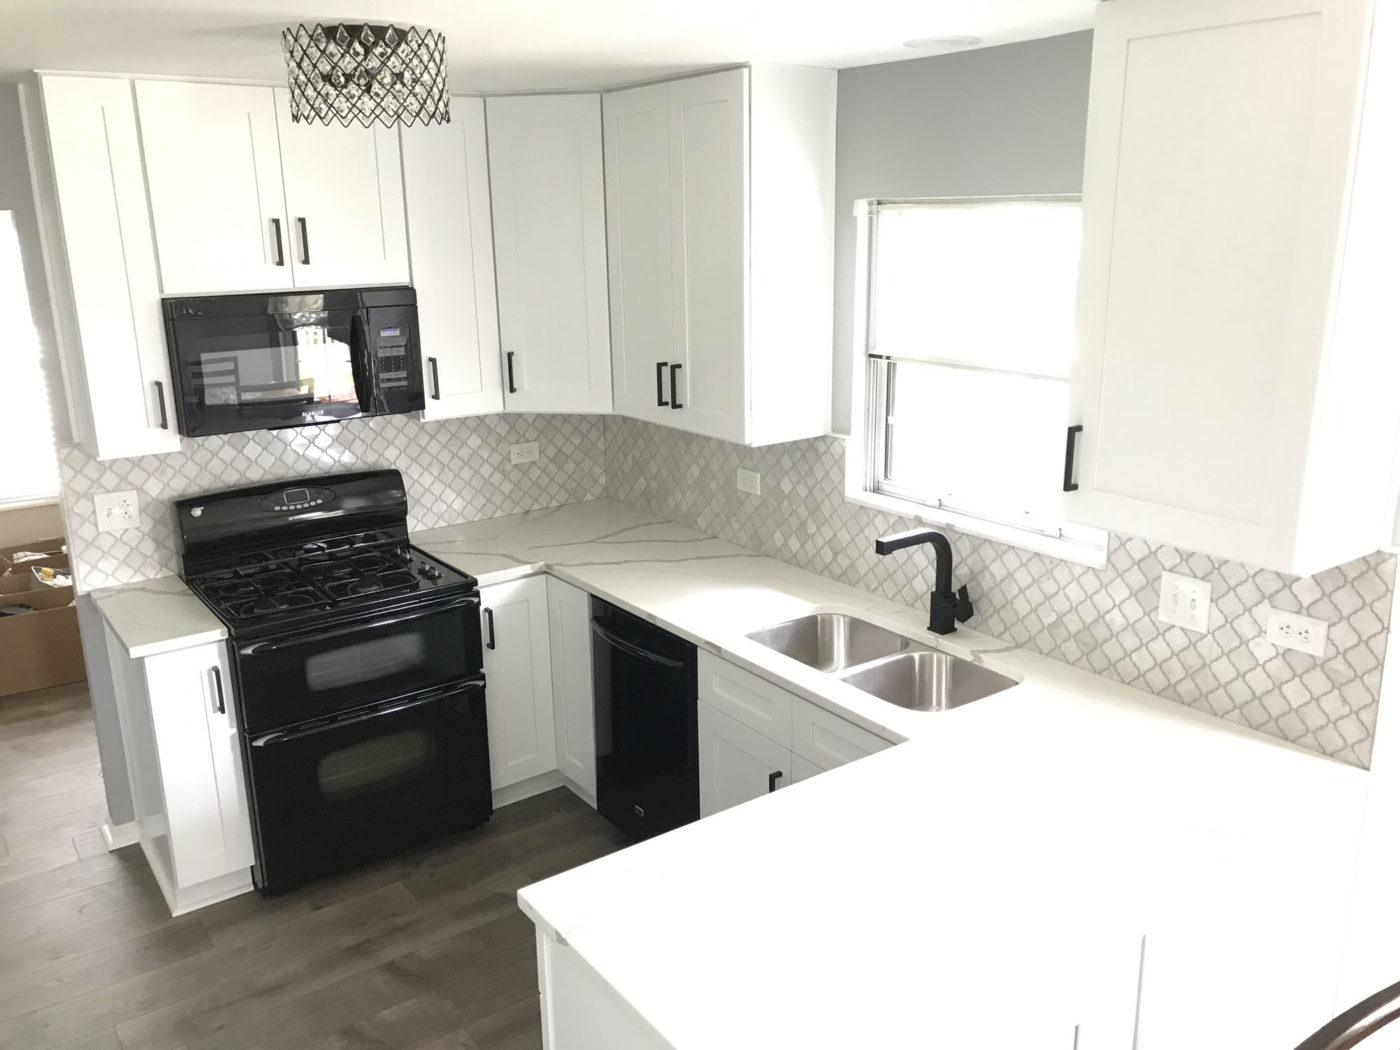 Kitchen Remodeling in Streamwood - white and black color scheme